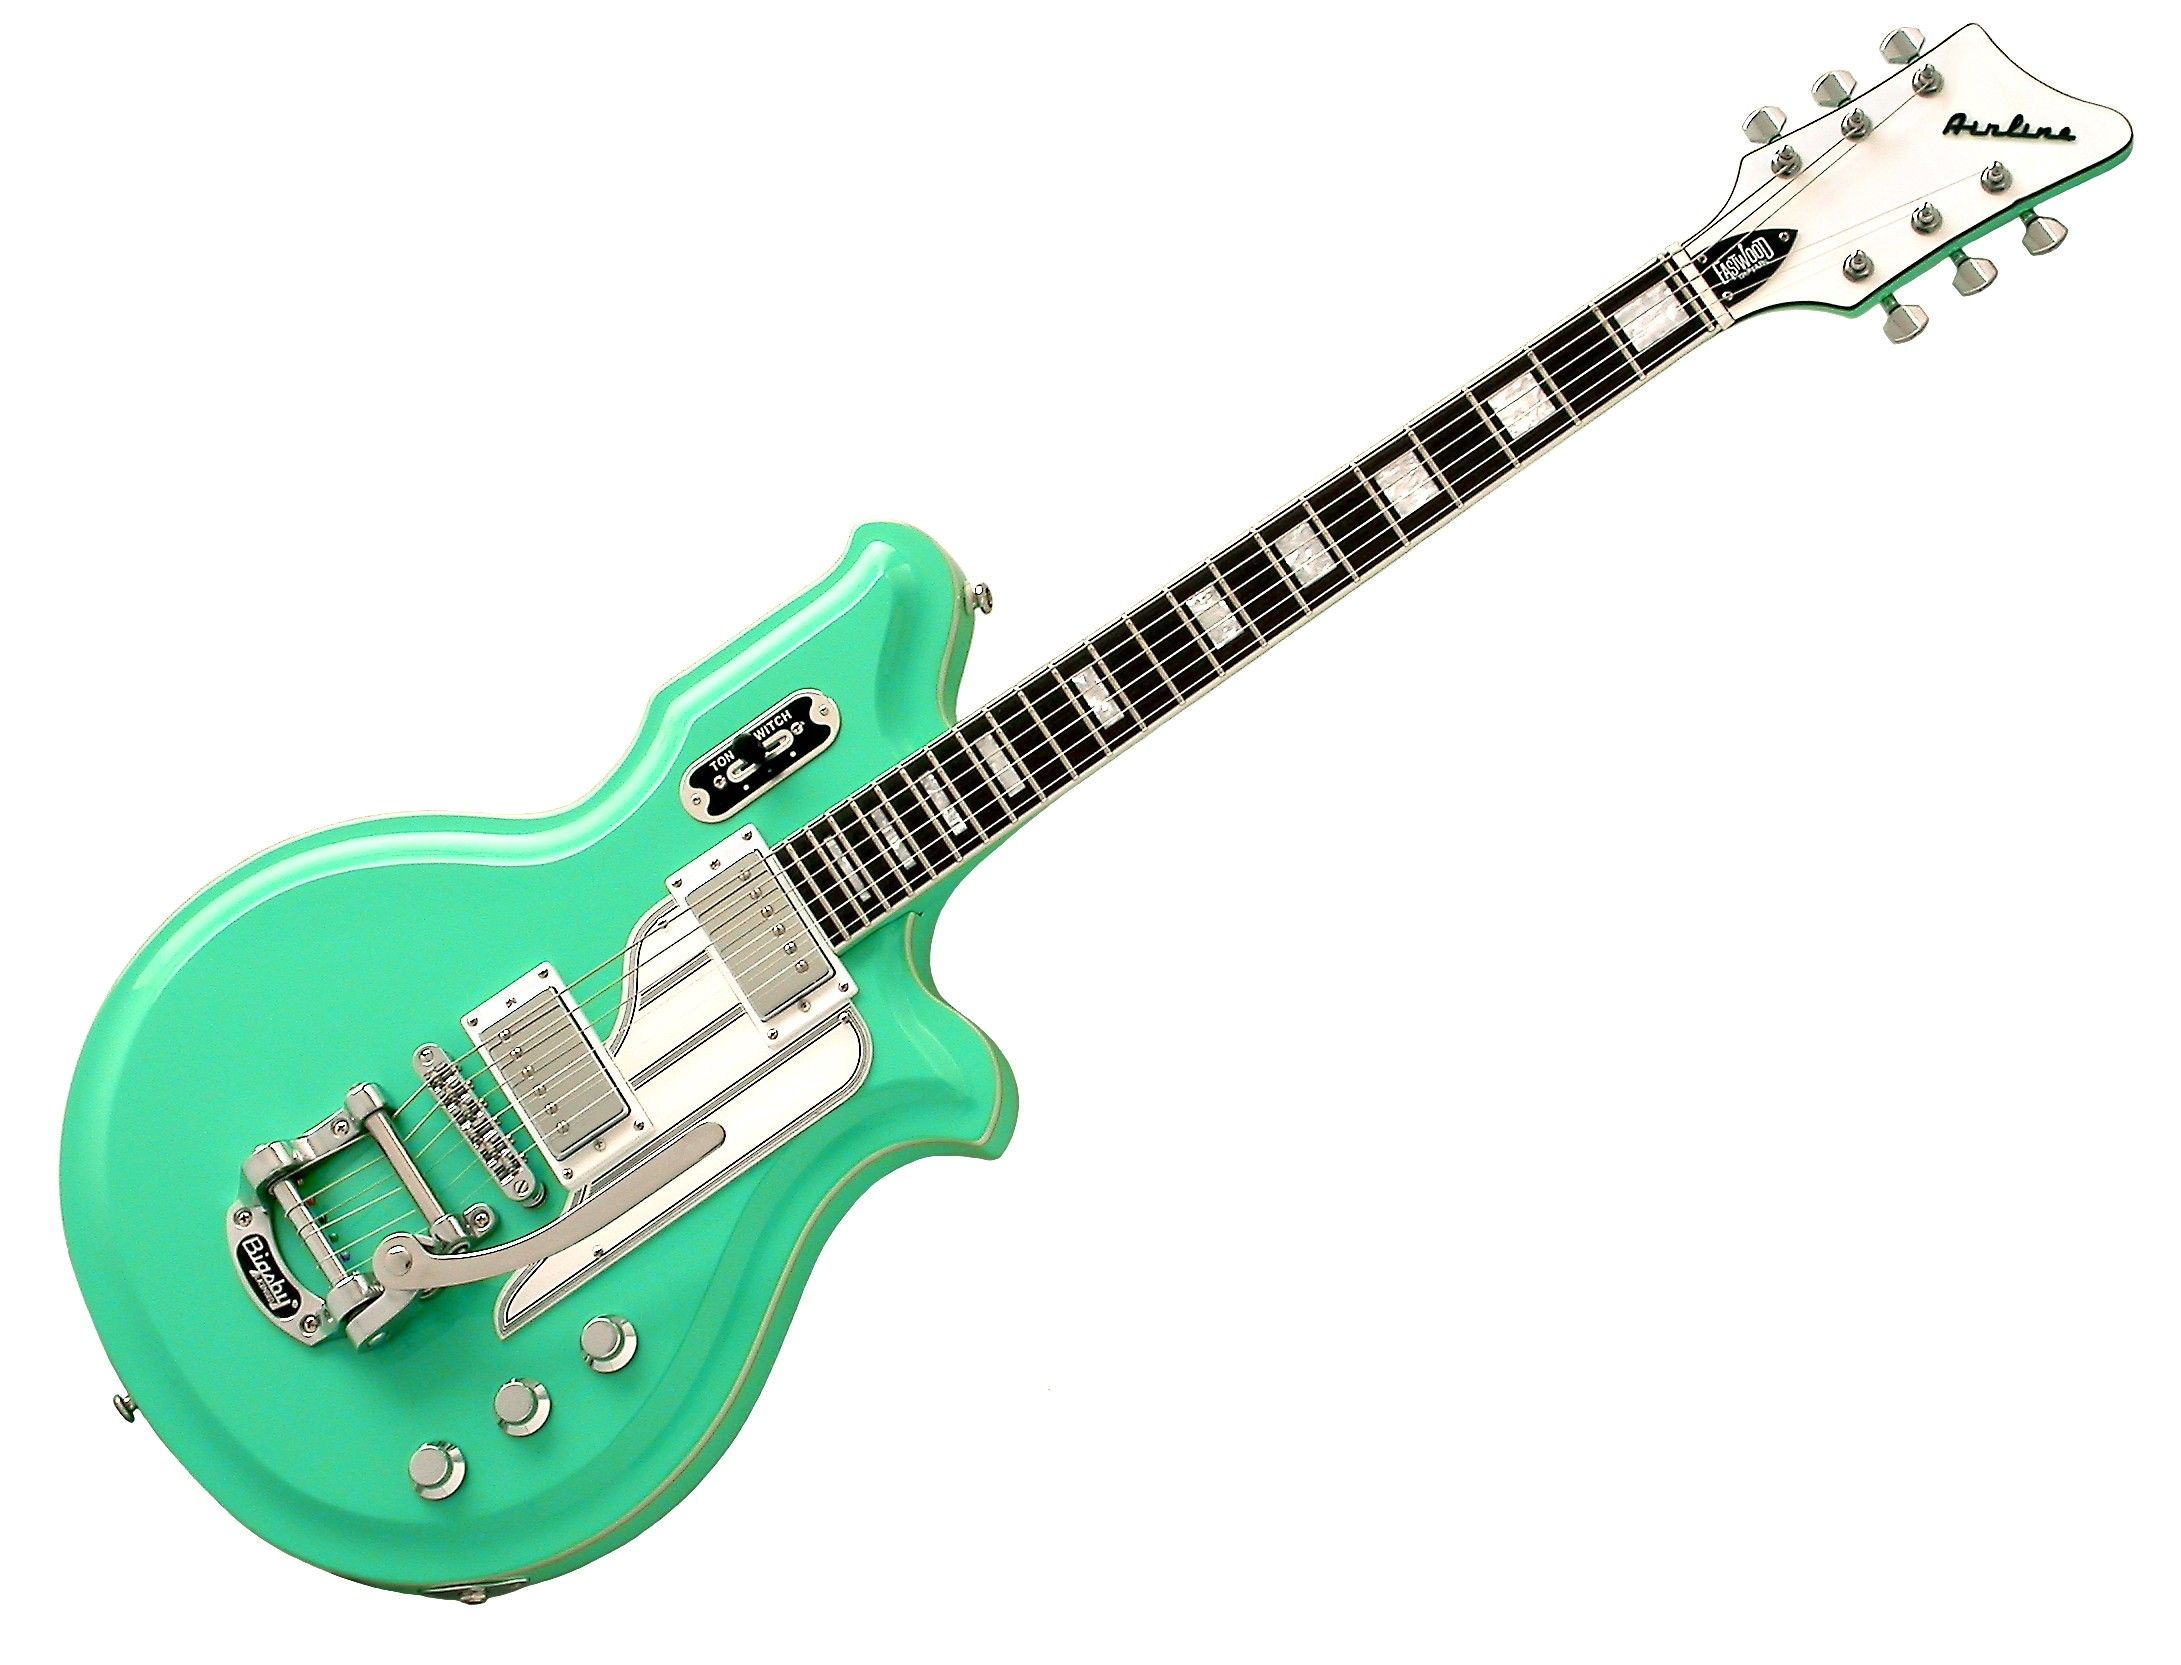 Wonderful Diagram Math Huge 2 Humbuckers In Series Round Tsb Search Push Pull Volume Pot Wiring Young Bulldog Security Remote Starter With Keyless Entry ColouredSecurity Wiring Airline Map Baritone DLX | Guitars, Instruments And Dan Auerbach